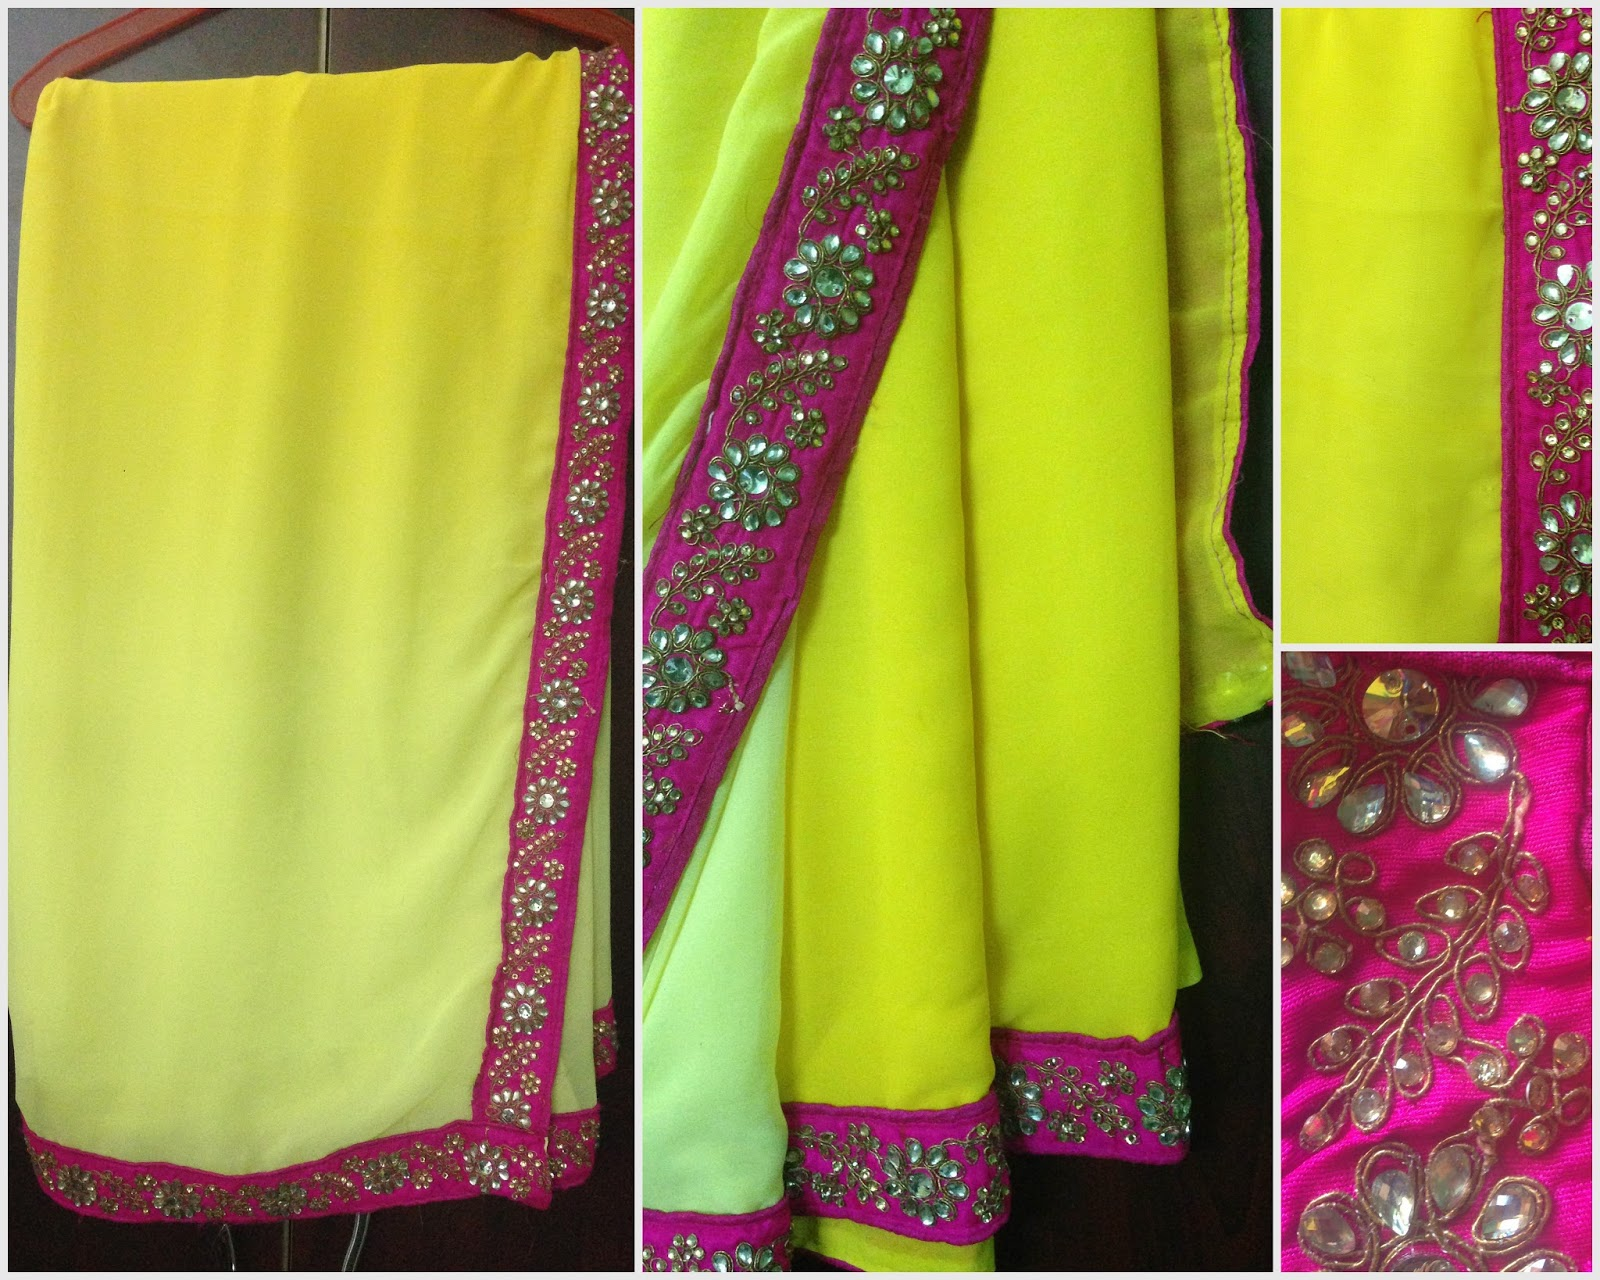 Lemon Yellow Colour Dual Shade In The Combination Of Light And Dark Shades Gives You Elegant Look It Comes With A Pink Border